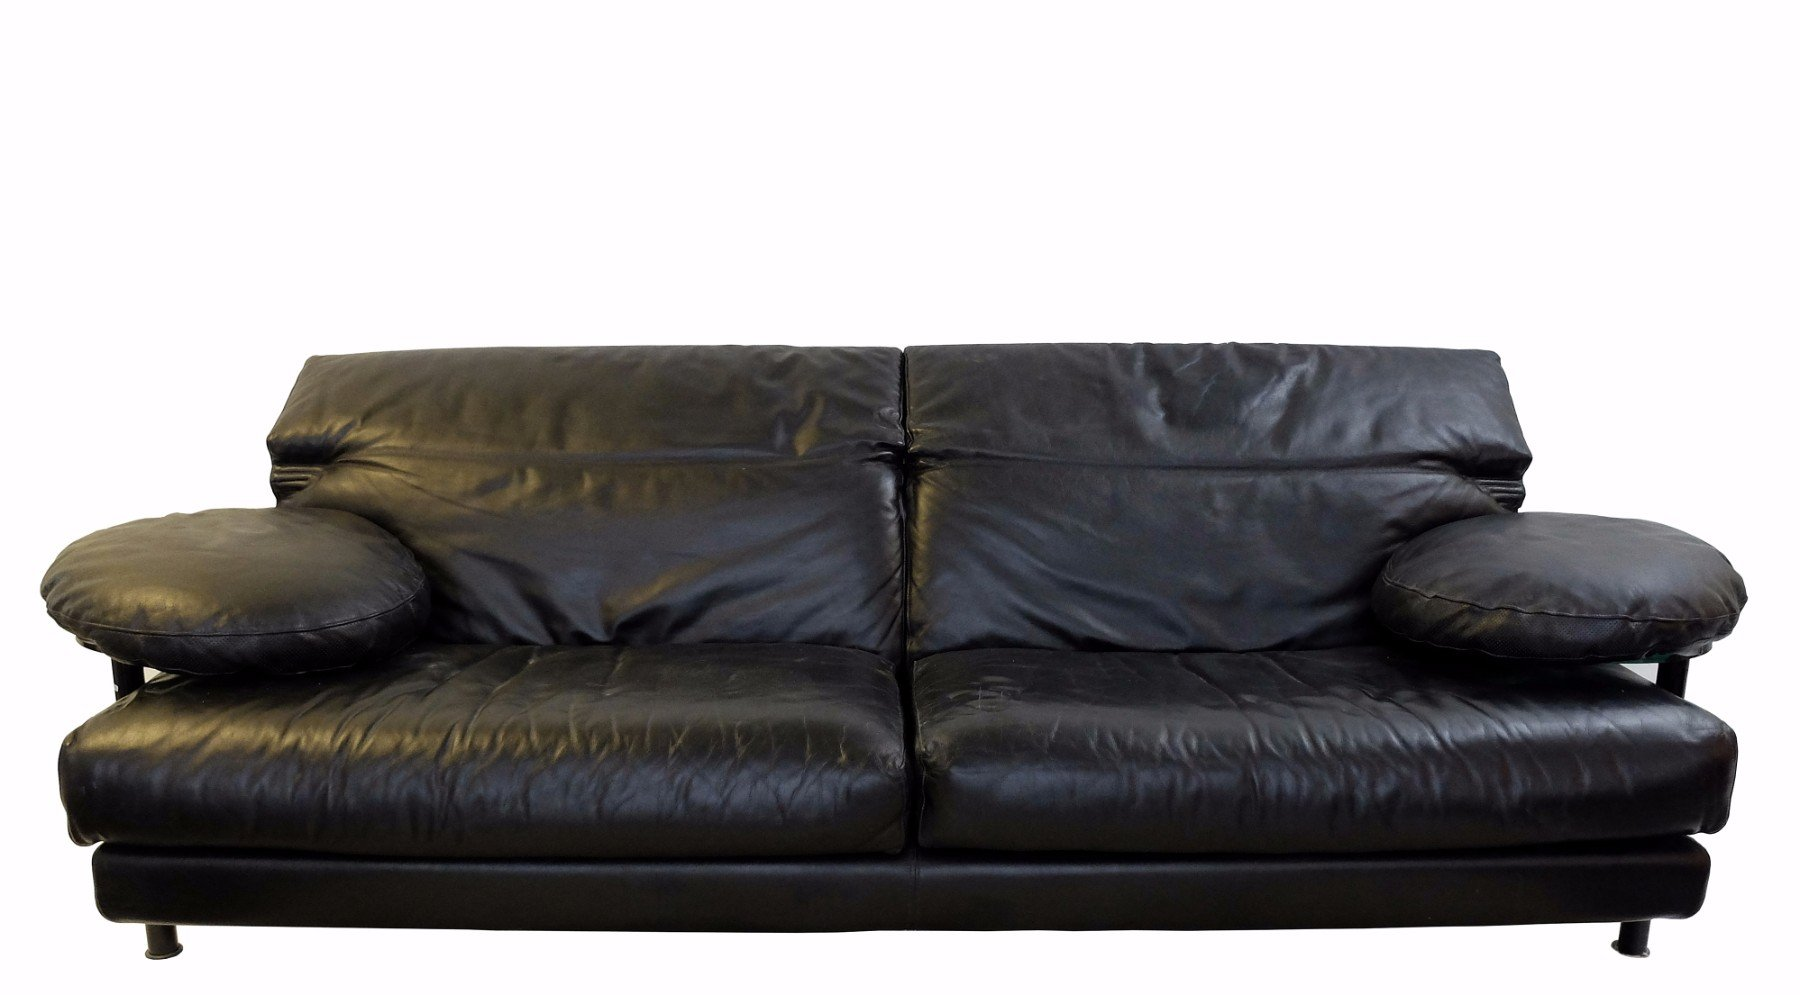 Vintage Arca Black Leather Sofa By Paolo Piva For B B Italia For Sale At Pamono